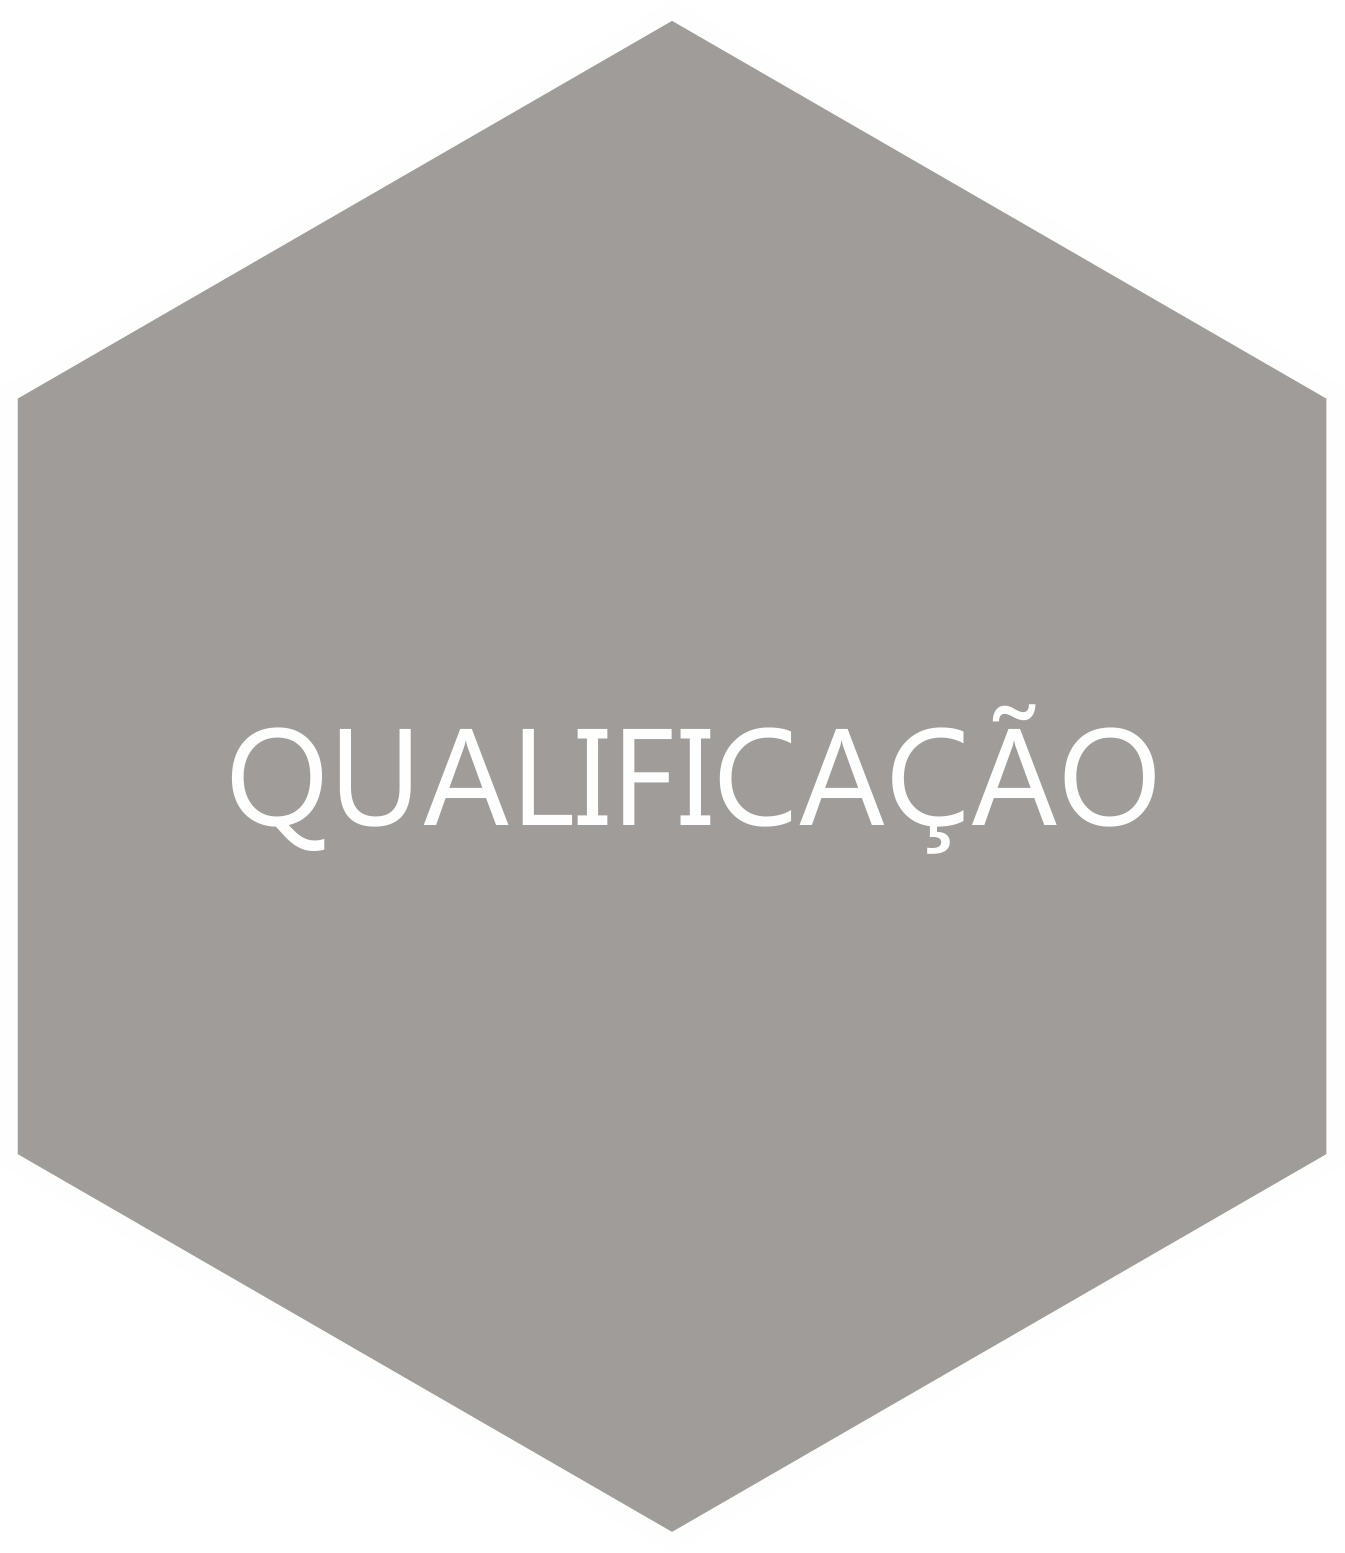 QUALIFICACAO.png